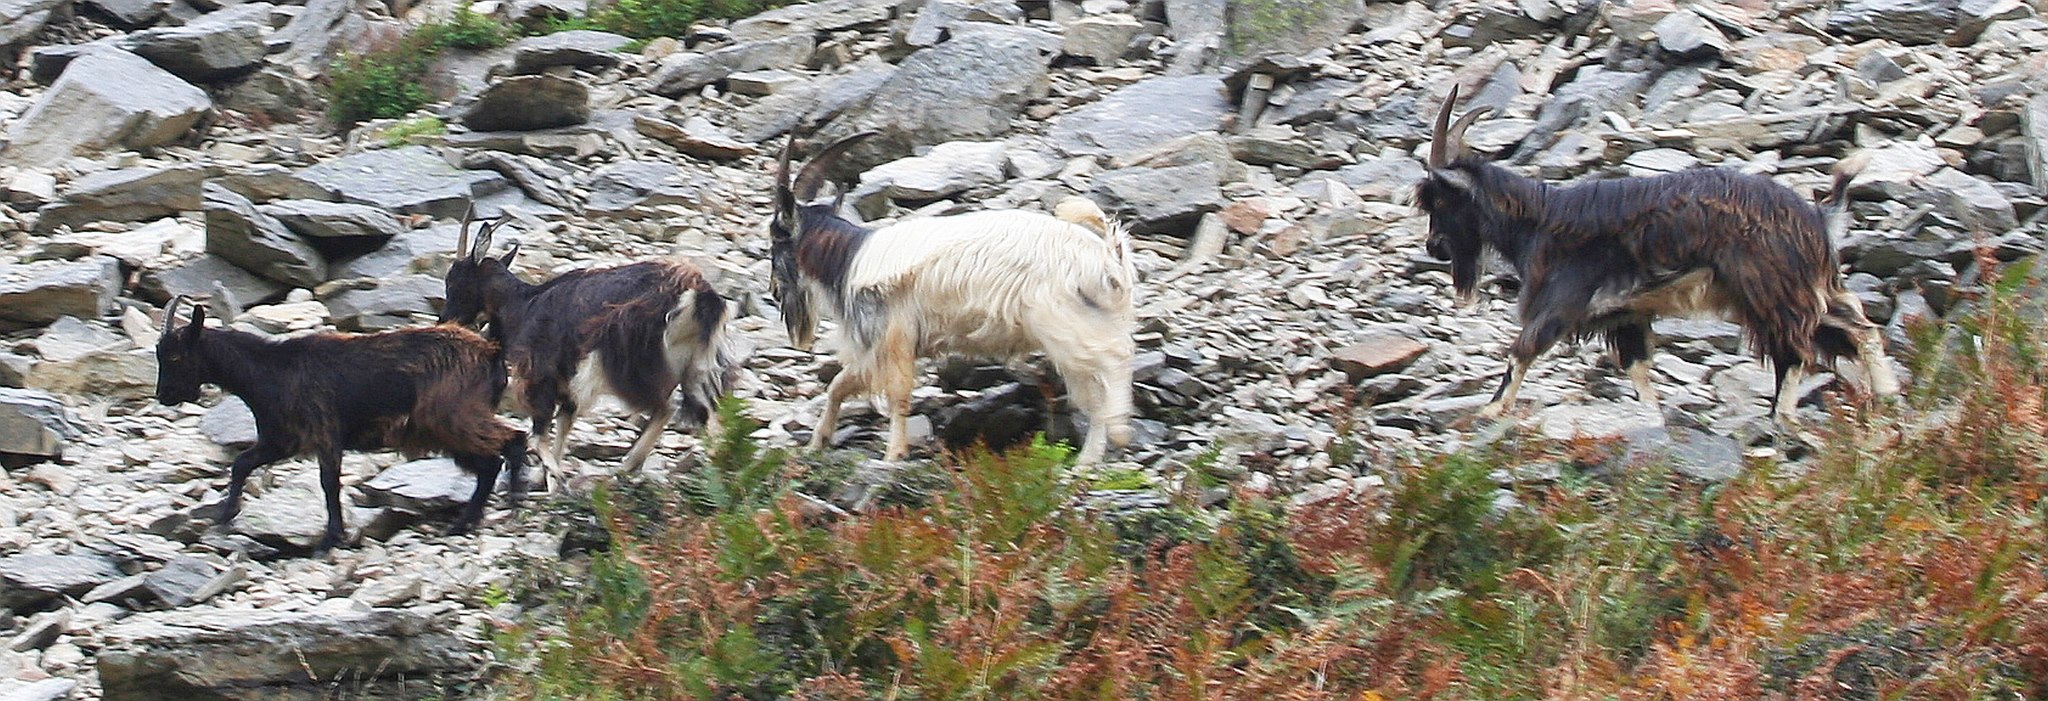 Goats at the Valley of the Rocks. By Peter French. http://www.flyingtigers.co.uk/